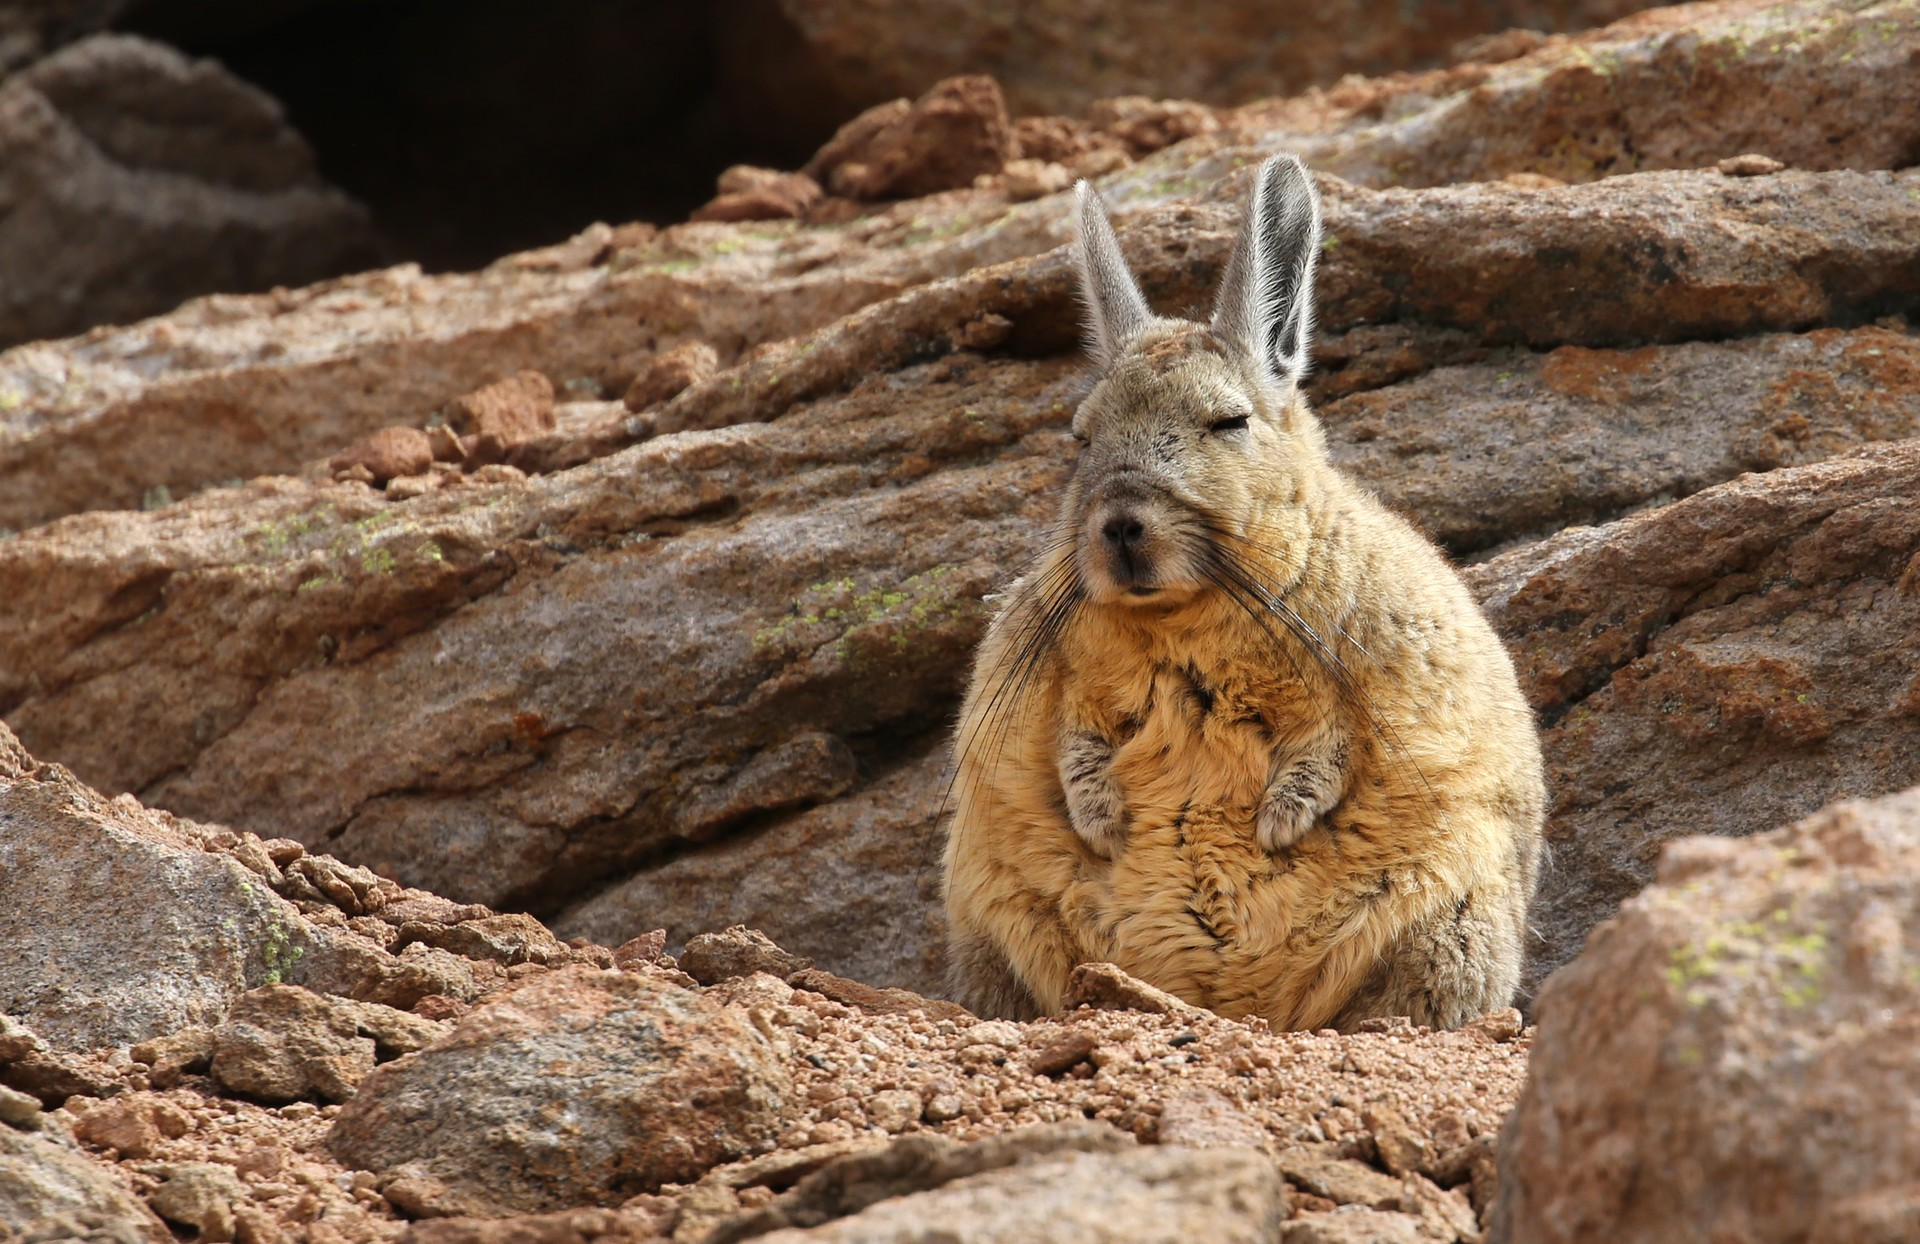 Mountain viscacha in Chile